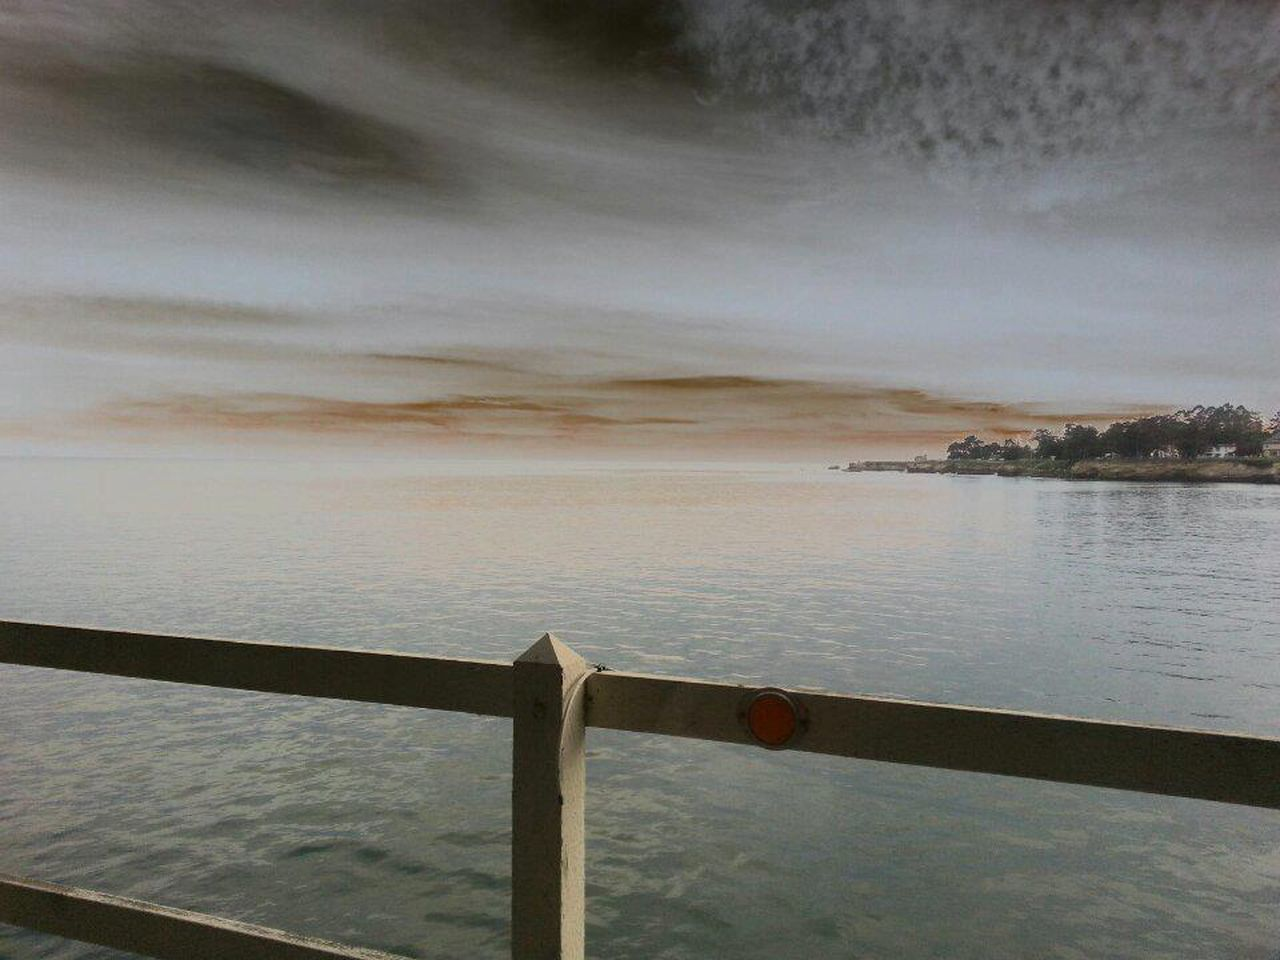 Surreal Vacation Boi-friend Adventure Pier Stormy Sky Bay Ocean Santa Cruz, Ca No Filter Fine Art Photography